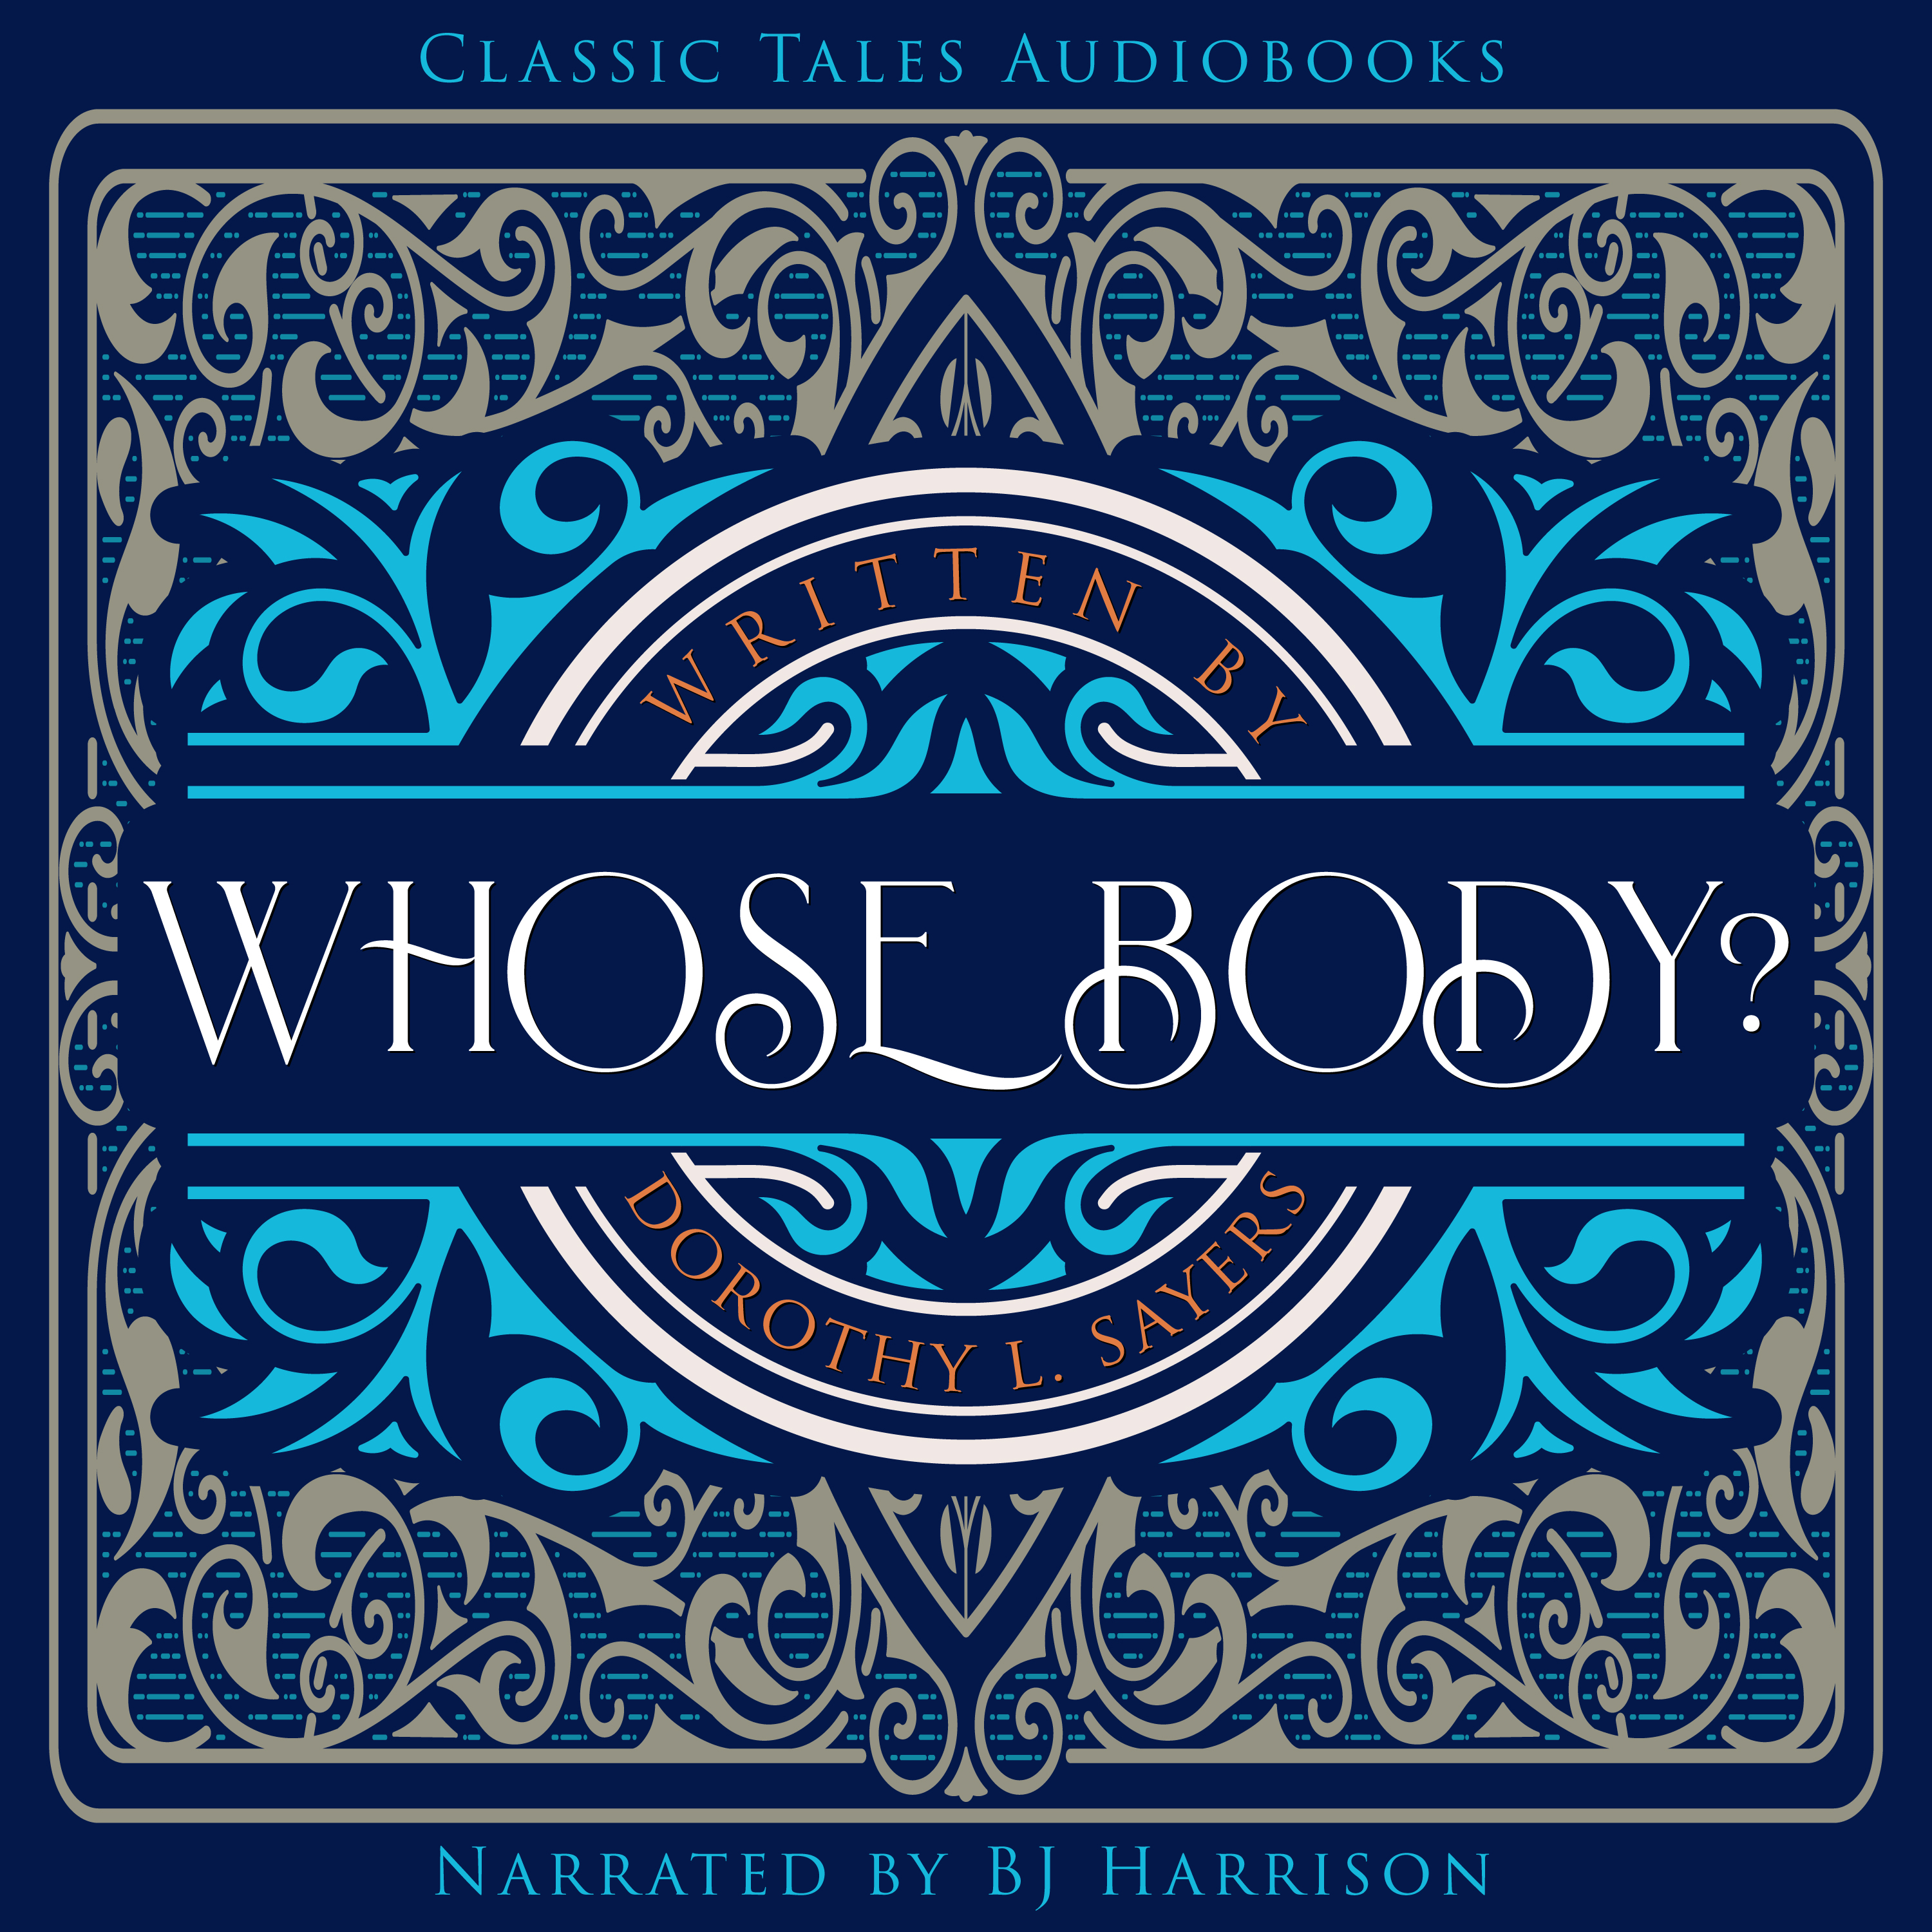 Ep. 709, Whose Body, Part 5 of 7, by Dorothy Sayers